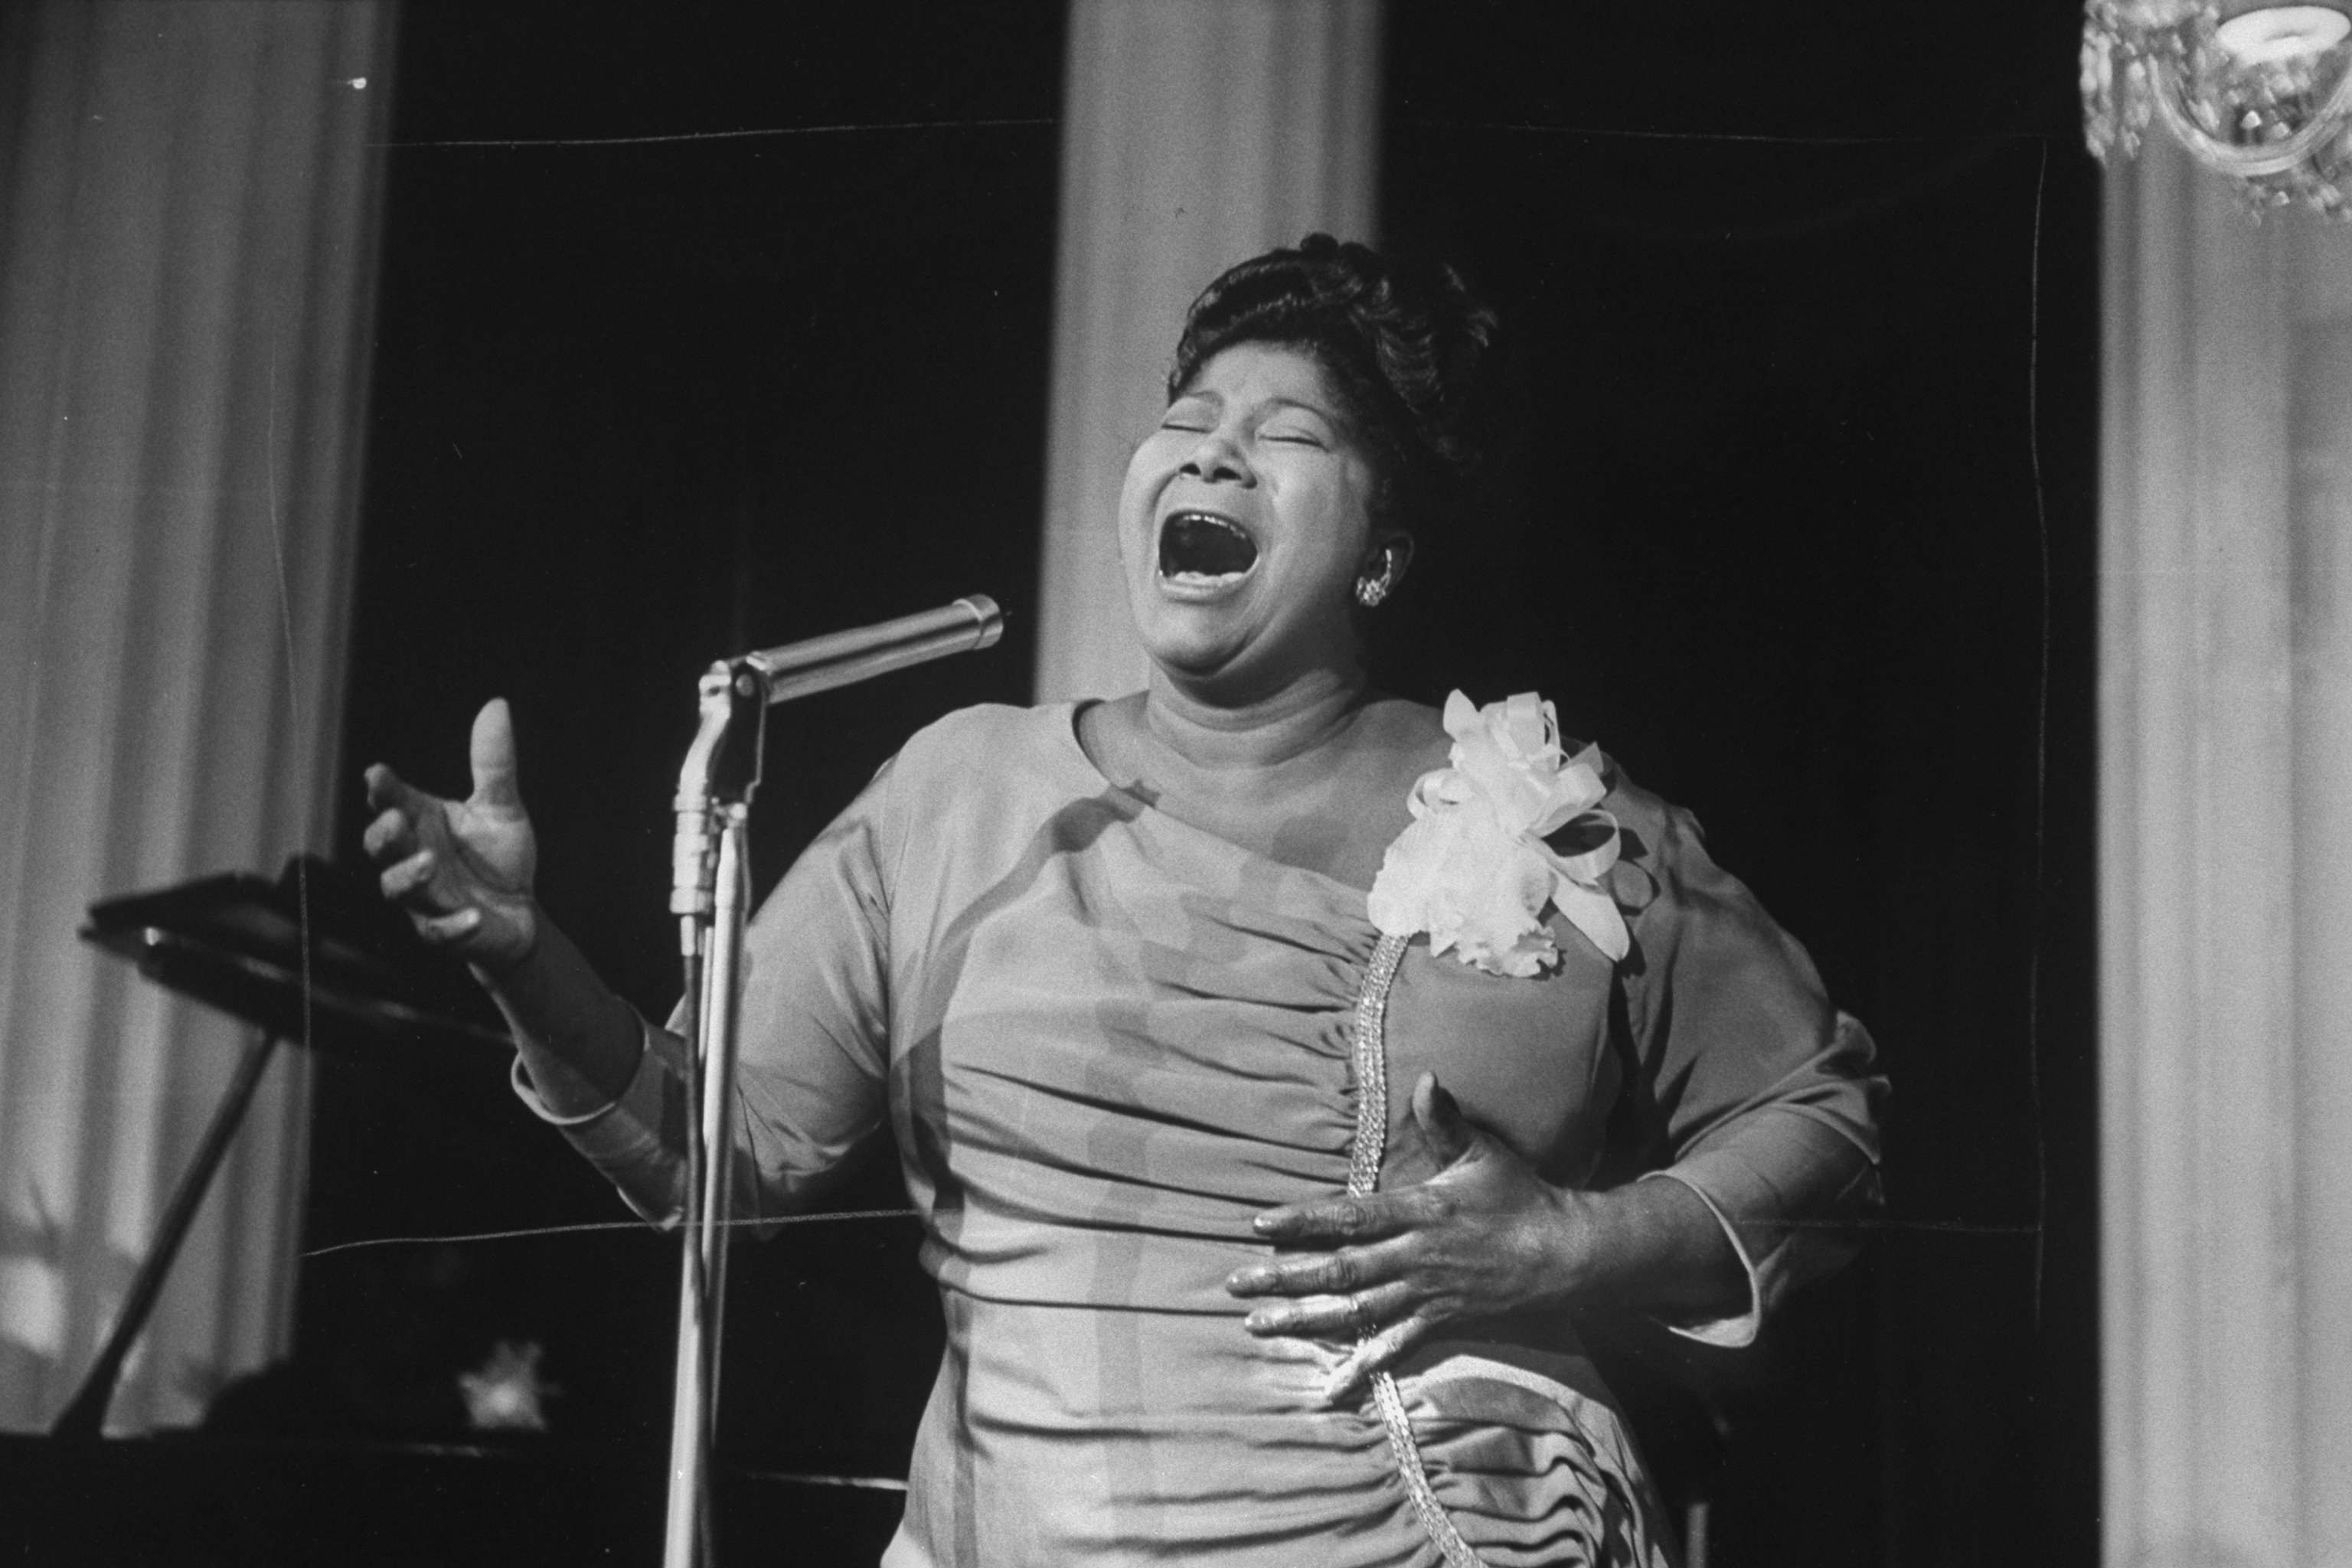 Singer Mahalia Jackson singing at a reception in a hotel.   Photo by Don Cravens/The LIFE Images Collection via Getty Images